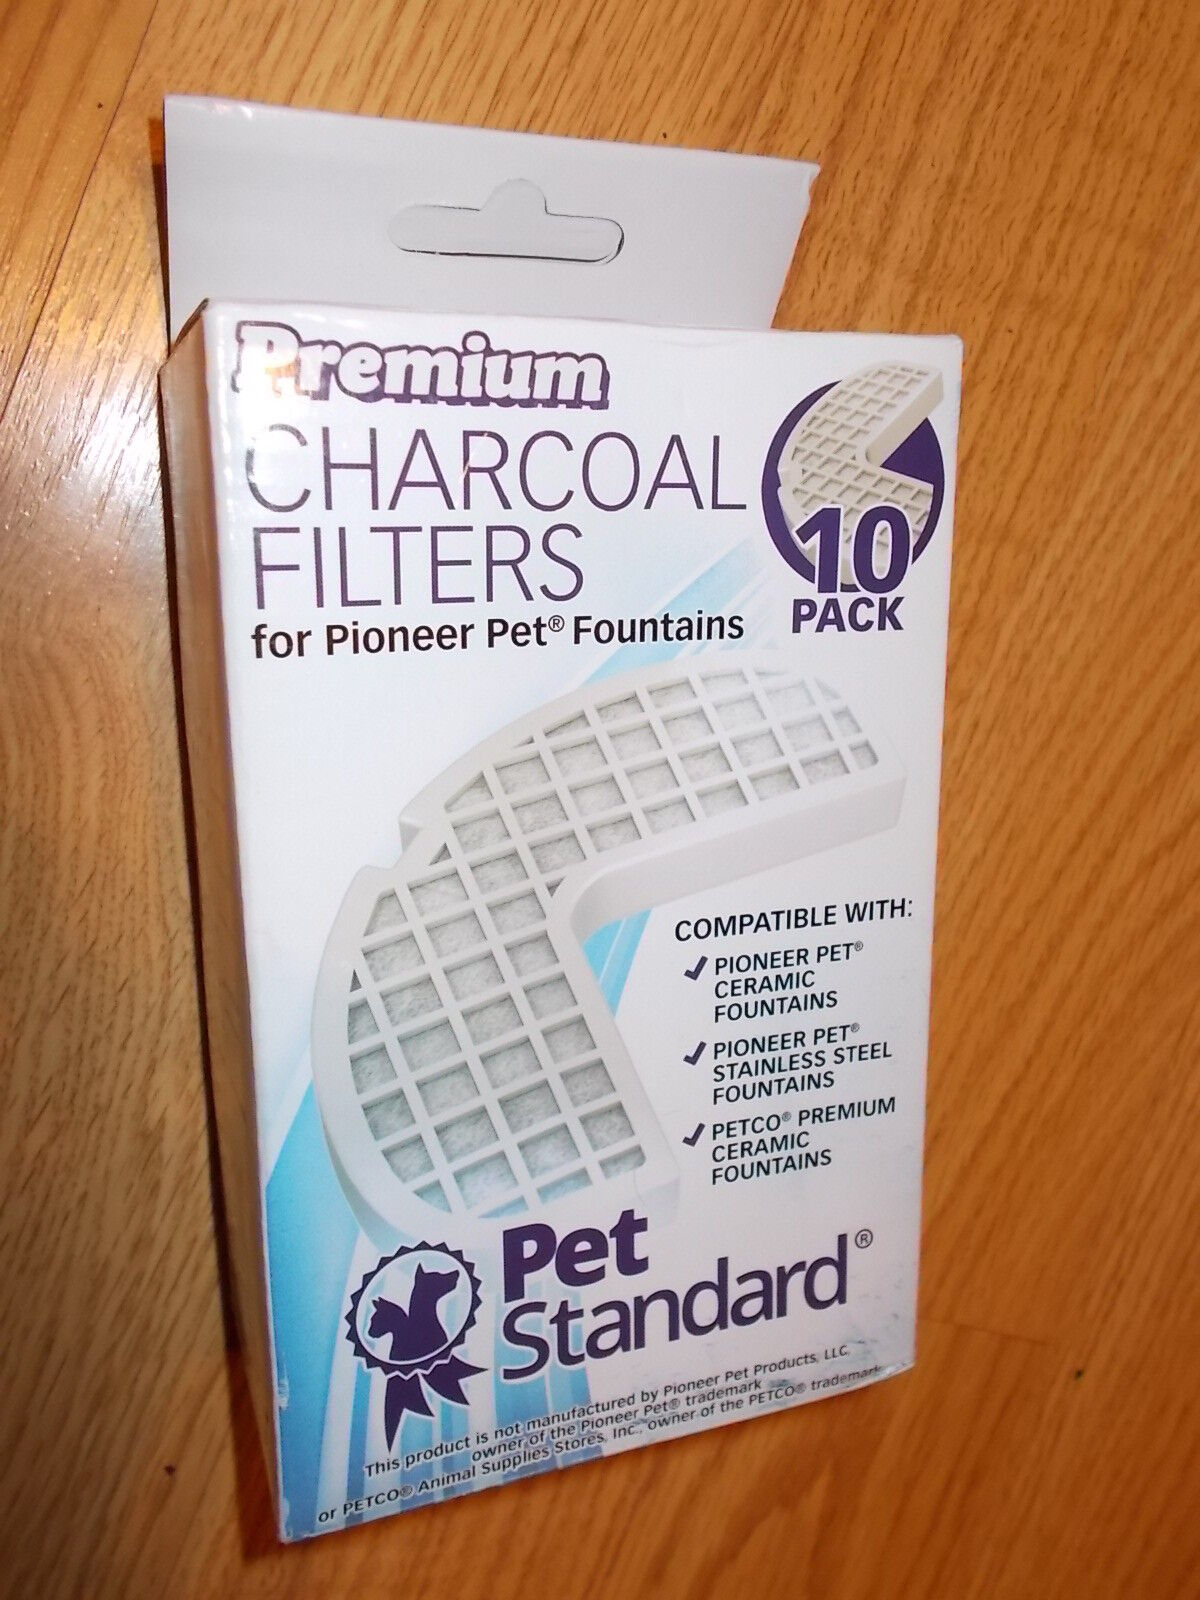 10 pk Pet Standard Charcoal Filters - Pioneer Ceramic & Stainless Steel Fountain